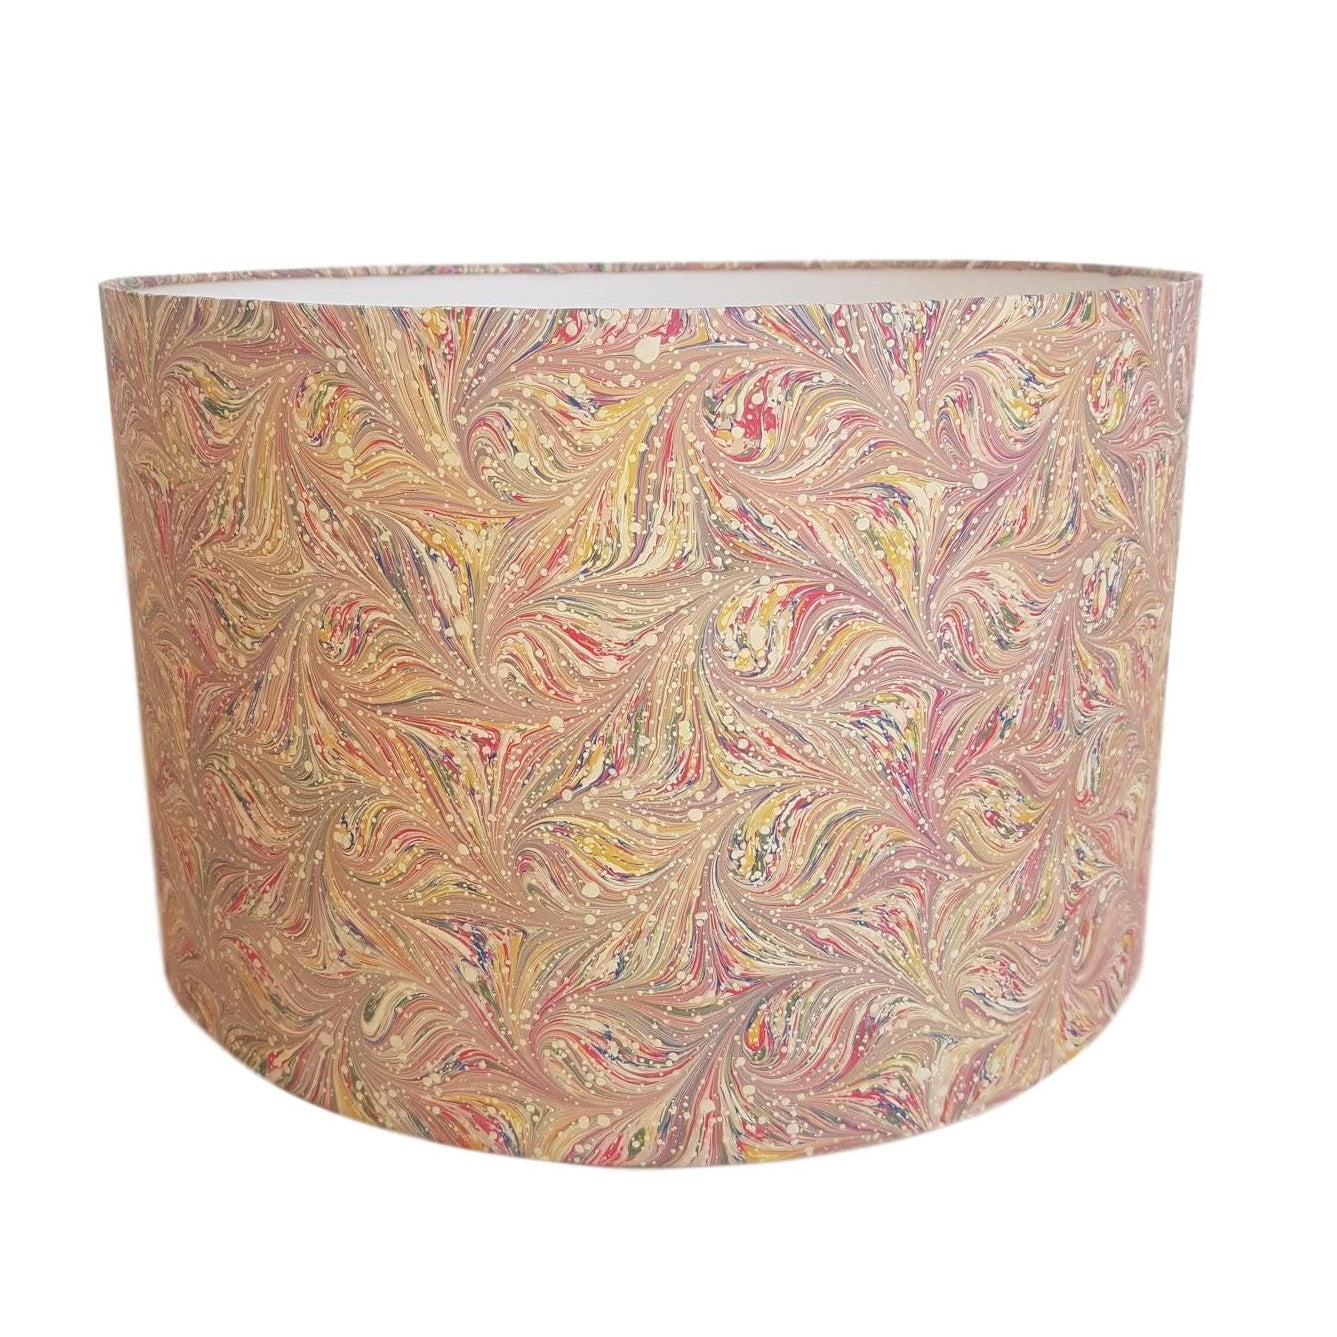 Munro and Kerr combed pink multicolour marbled paper drum lampshade